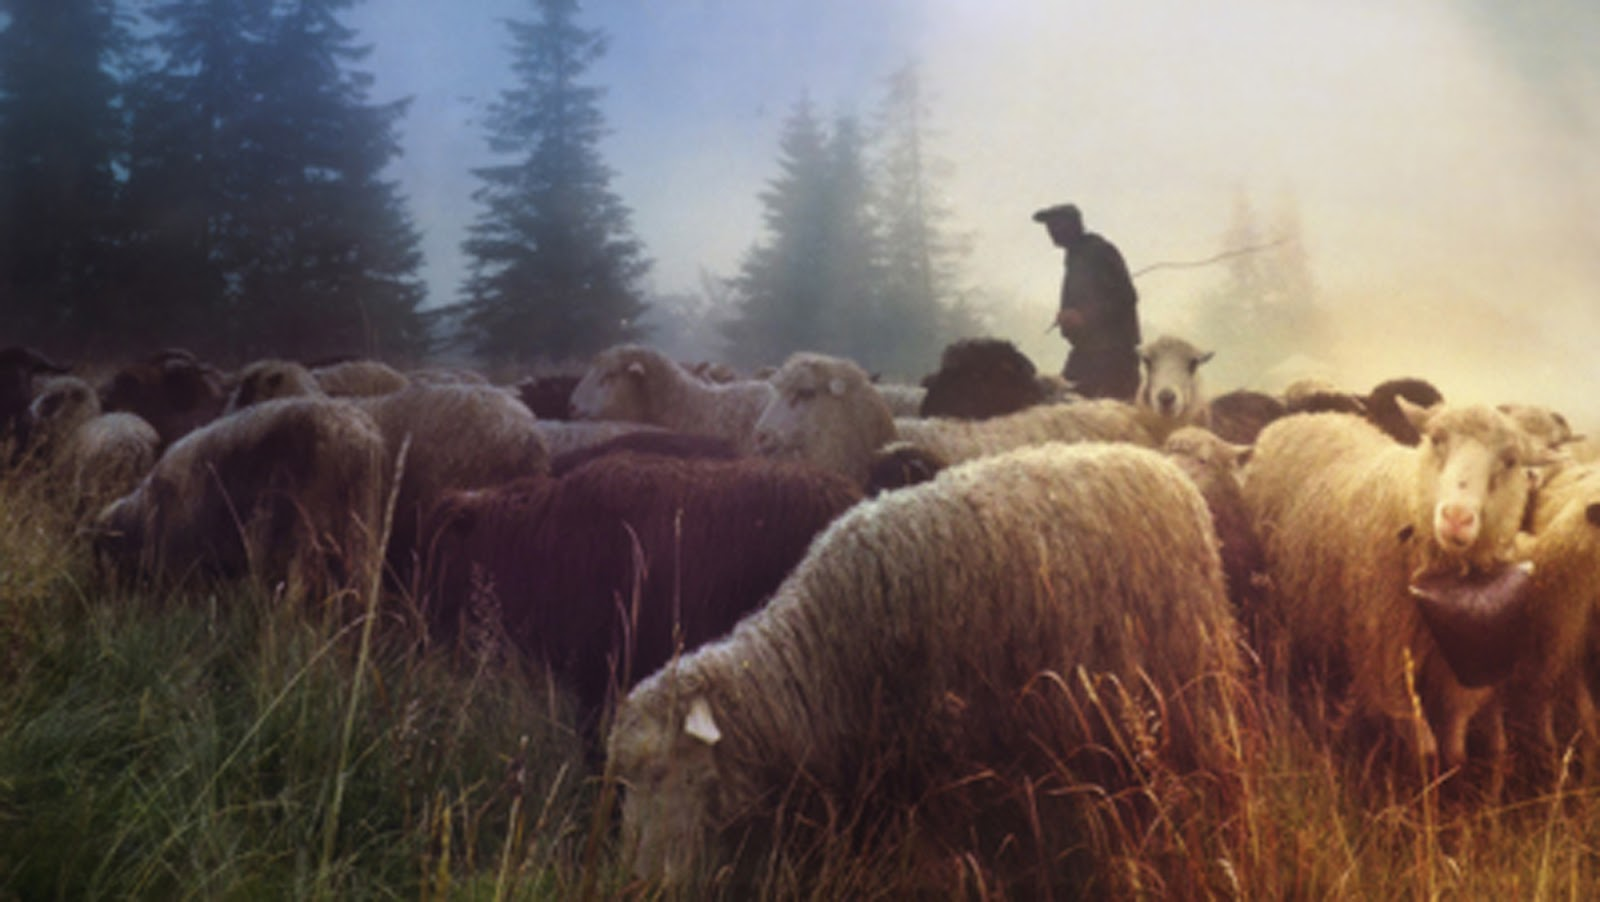 christ as the good shepherd essay Questions and answers on the eucharist dear brothers and sisters in the lord, the beginning of the new millenium challenges us to open wide our hearts to christ.